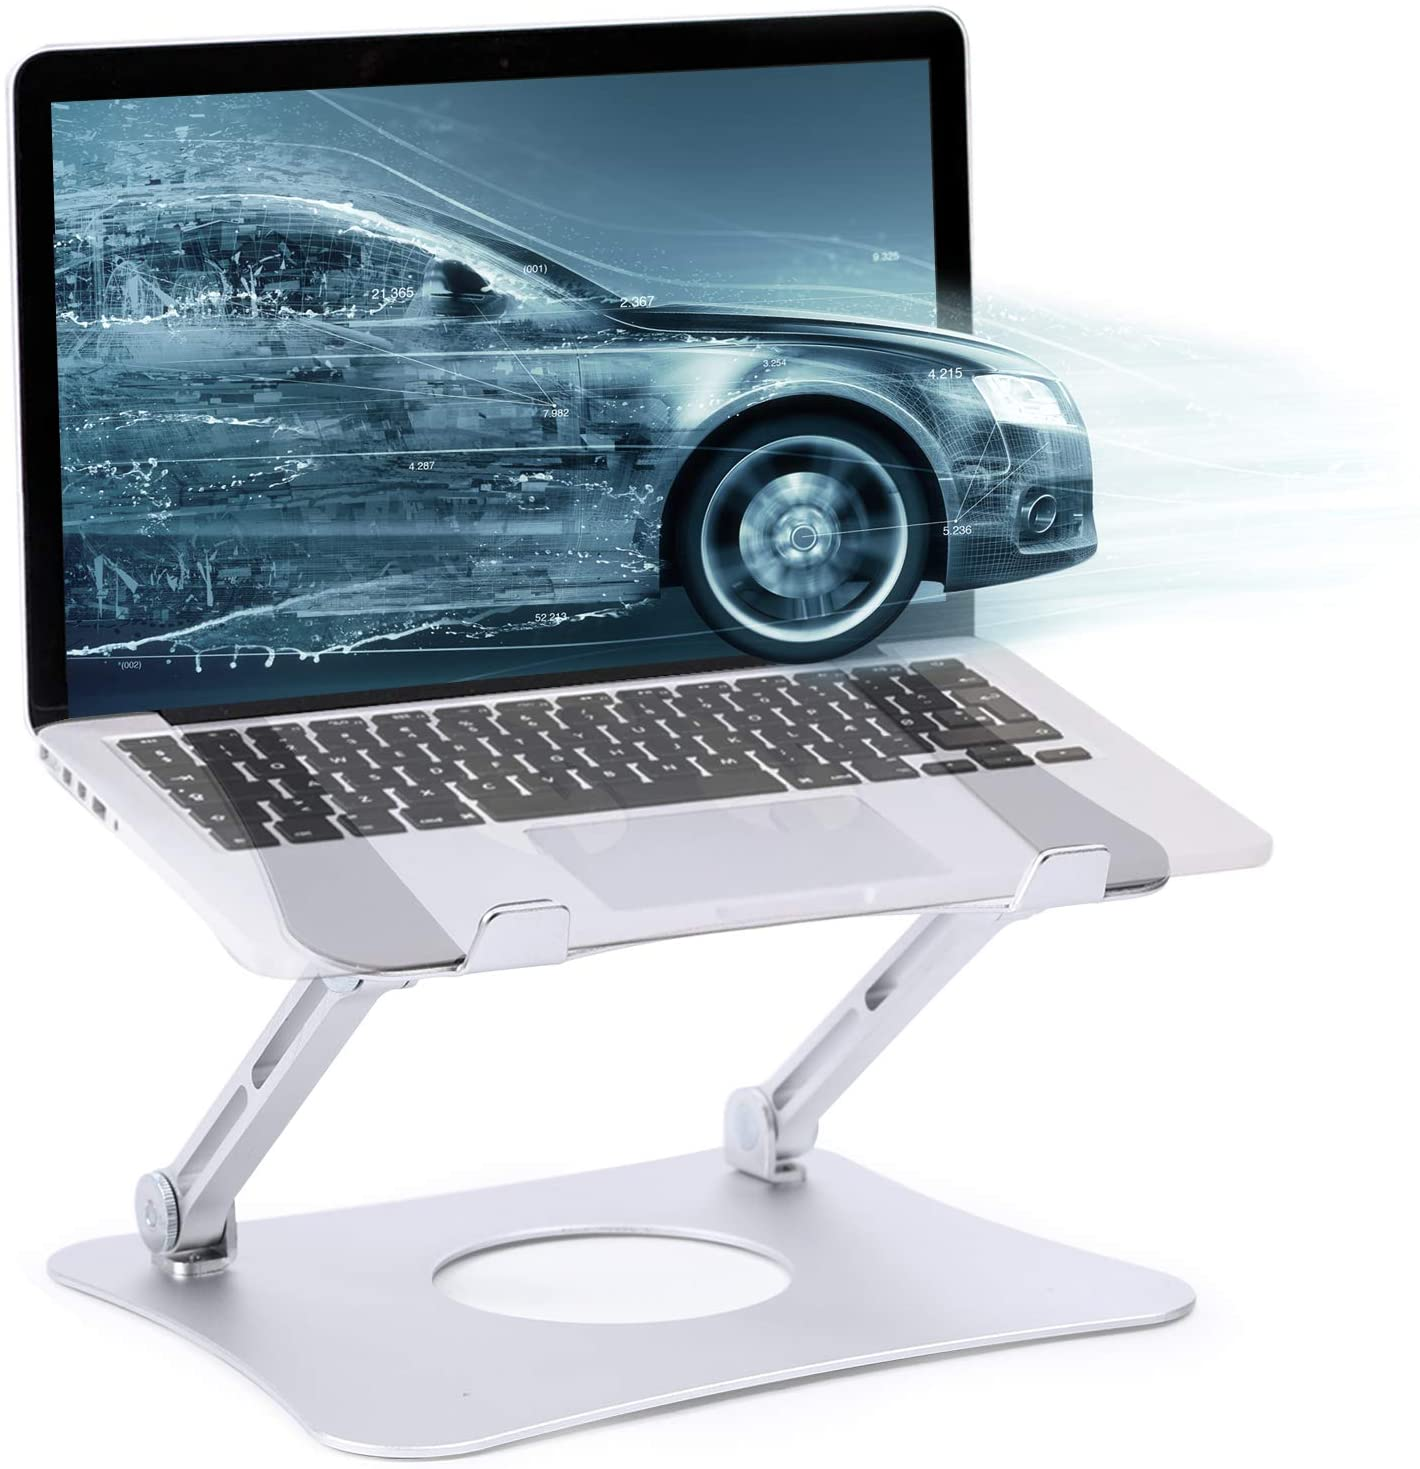 Adjustable Laptop Stand Ergonomic for Bed Computer Lifter for Laptop MacBook Stand for Desk Computer Holder for Desk MacBook Holder Stand Computer Holder for Laptop for Bed for Laptop 10-15.6 inch